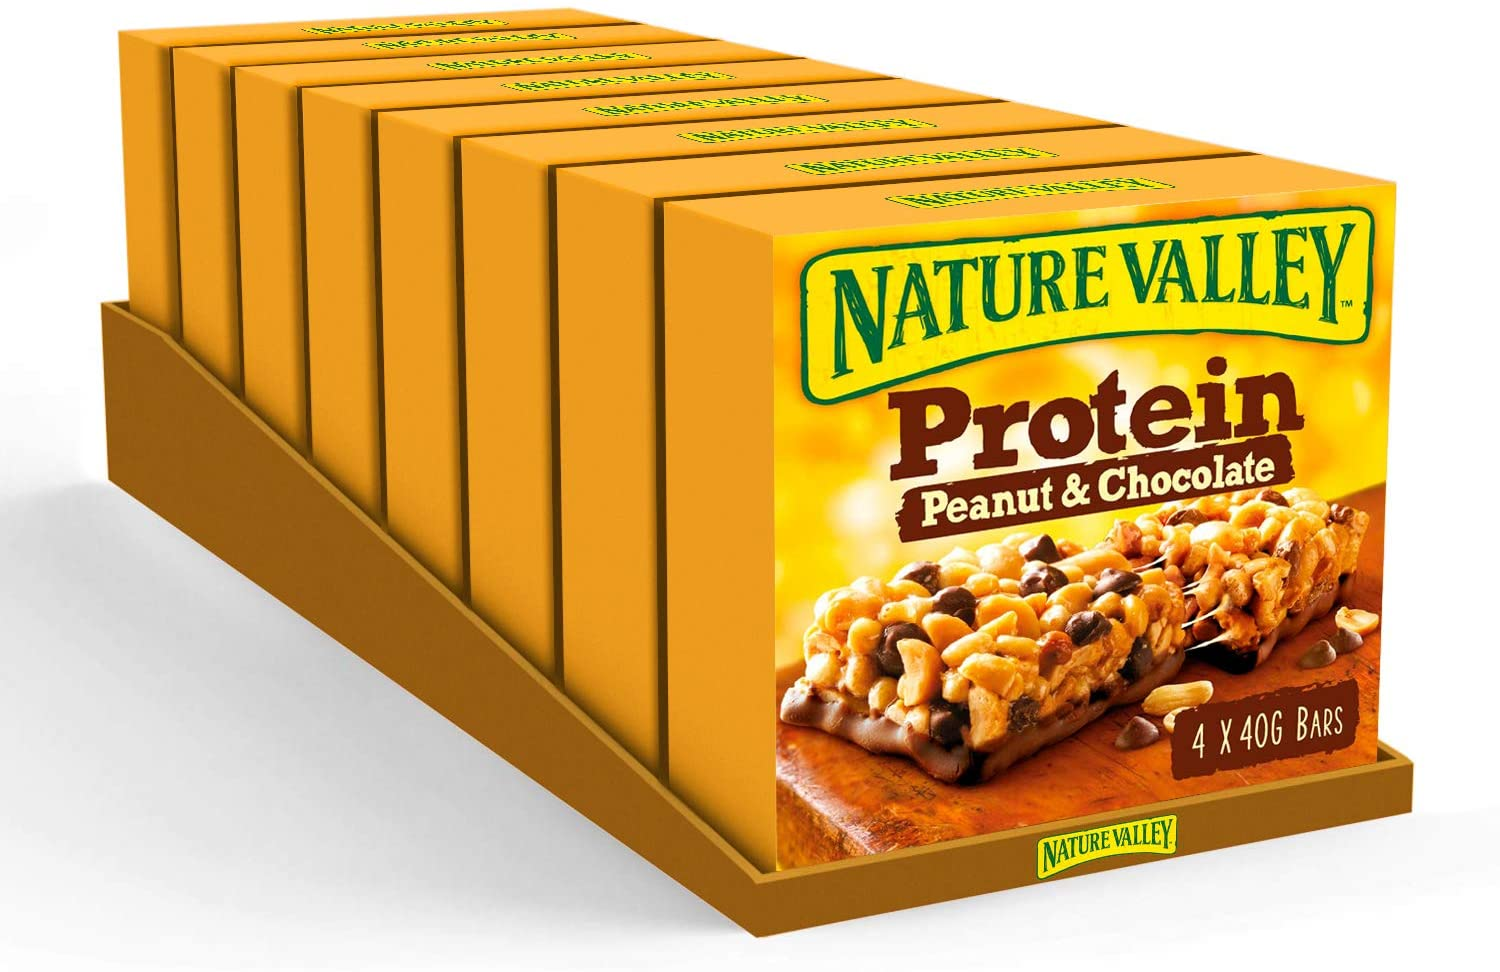 Nature Valley Protein Bar- Peanut & Chocolate Review